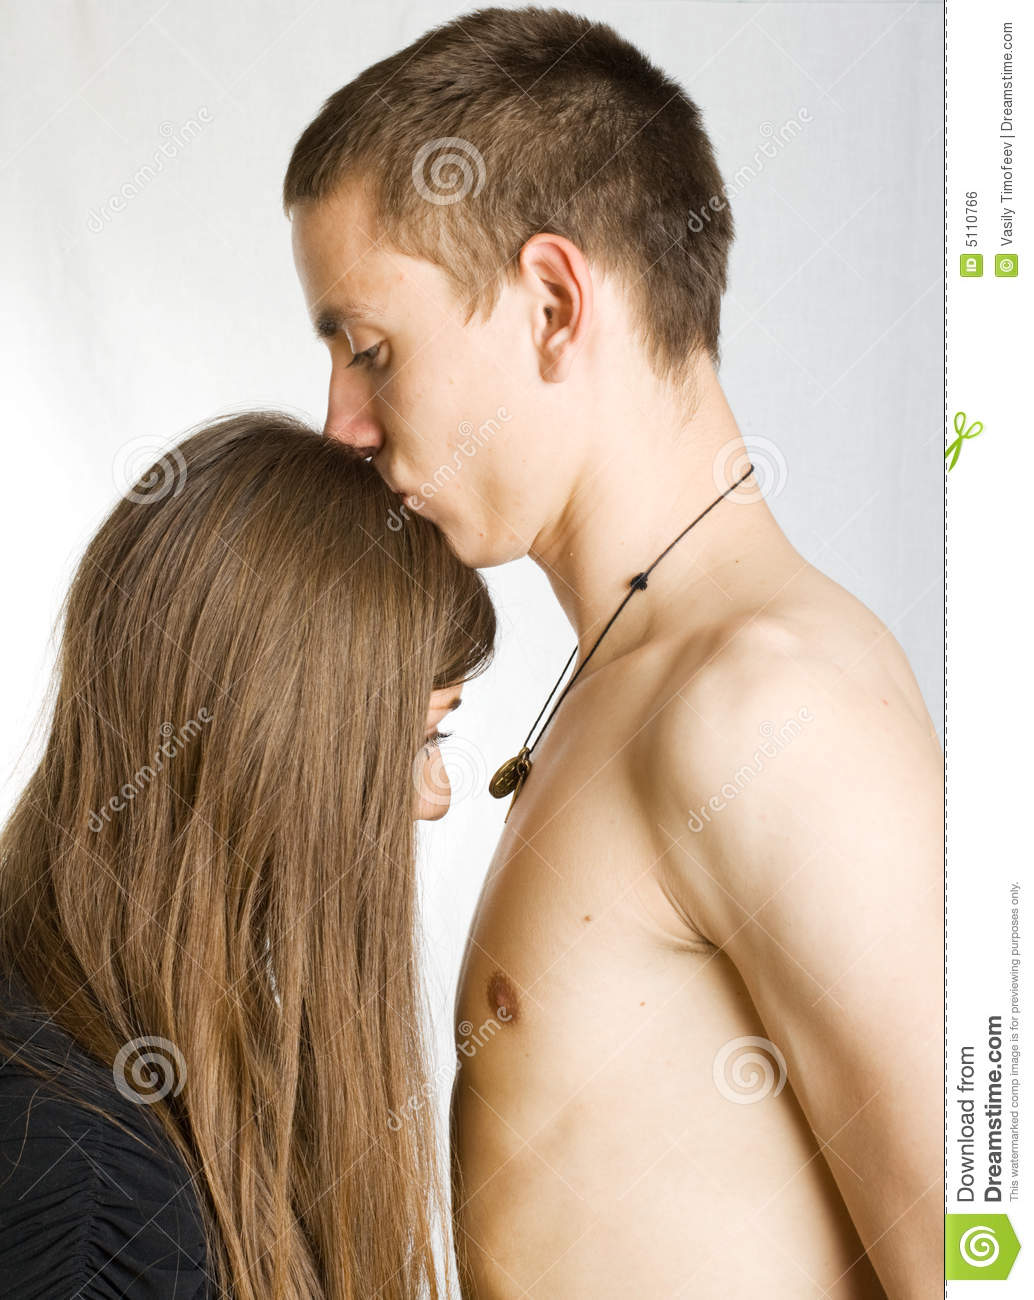 hot men kissing women